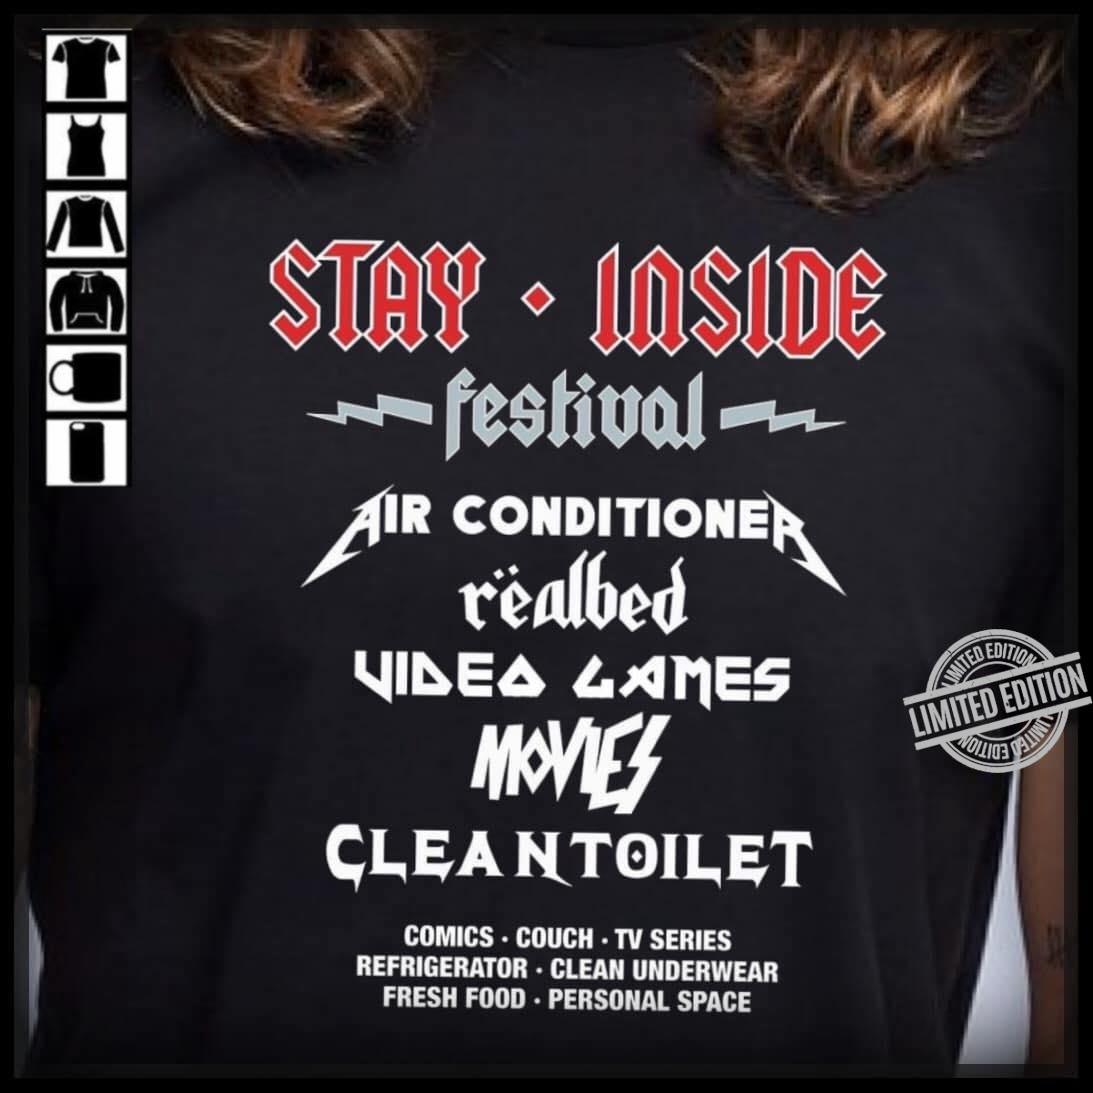 Stay Inside Festival Air Conditione Realbed Video Games Movies Cleah Toilet Comics Couch TV Series Refrigerator Clean Underwear Fresh Food Personal Space Shirt